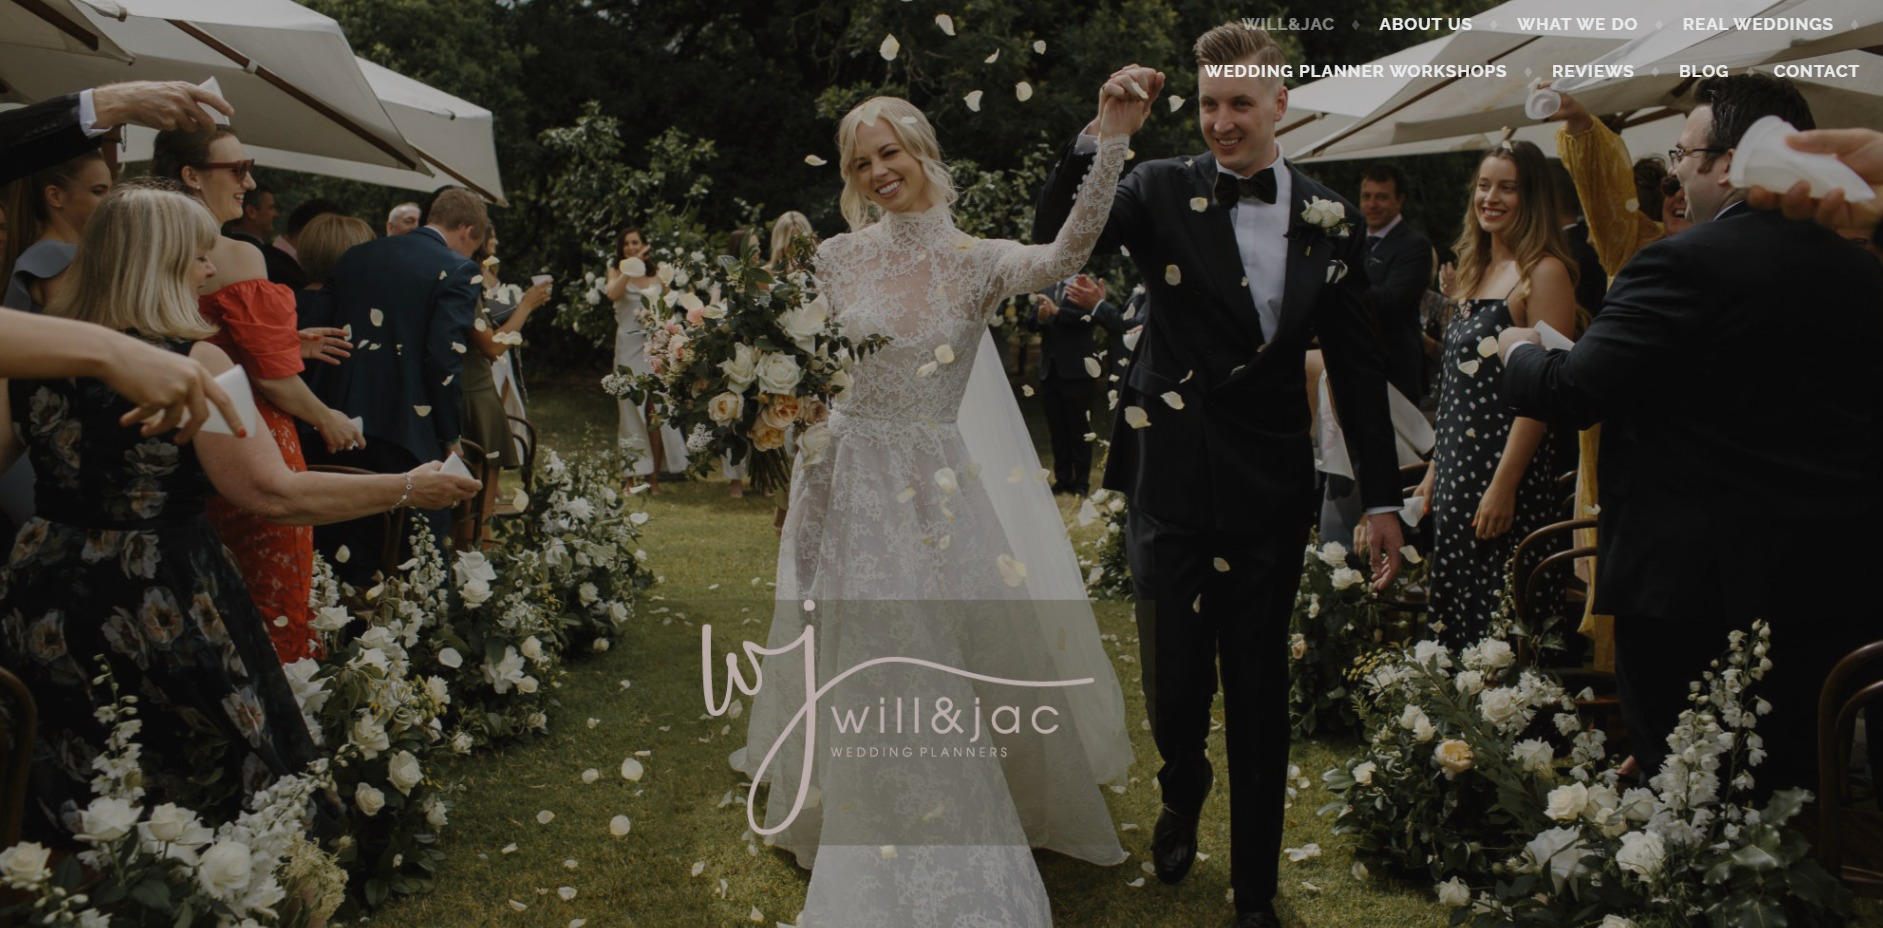 Will&jac Wedding Planners4